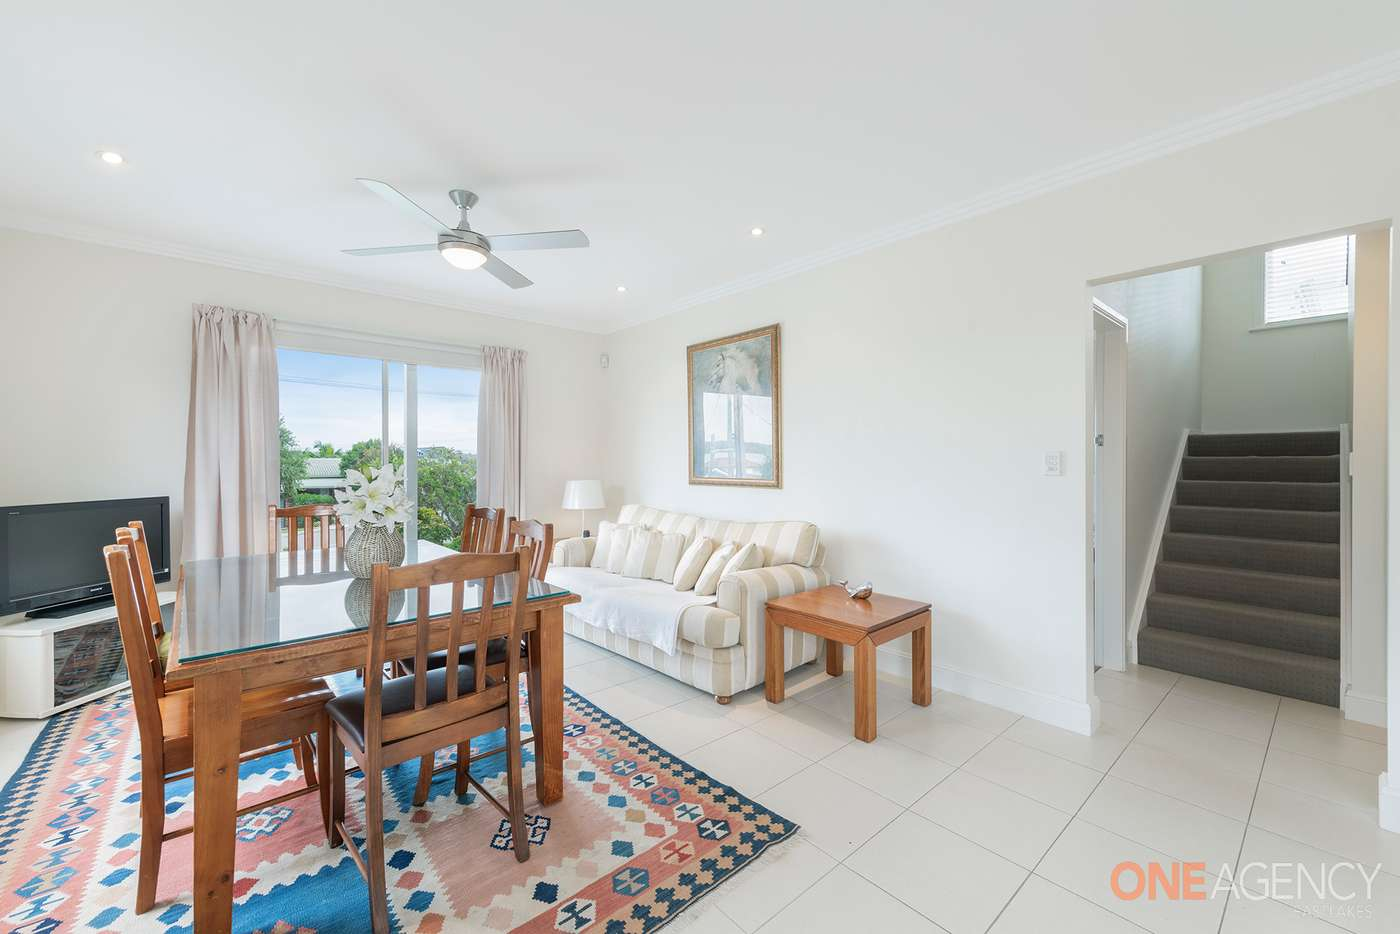 Sixth view of Homely house listing, 23 Marine Parade, Nords Wharf NSW 2281